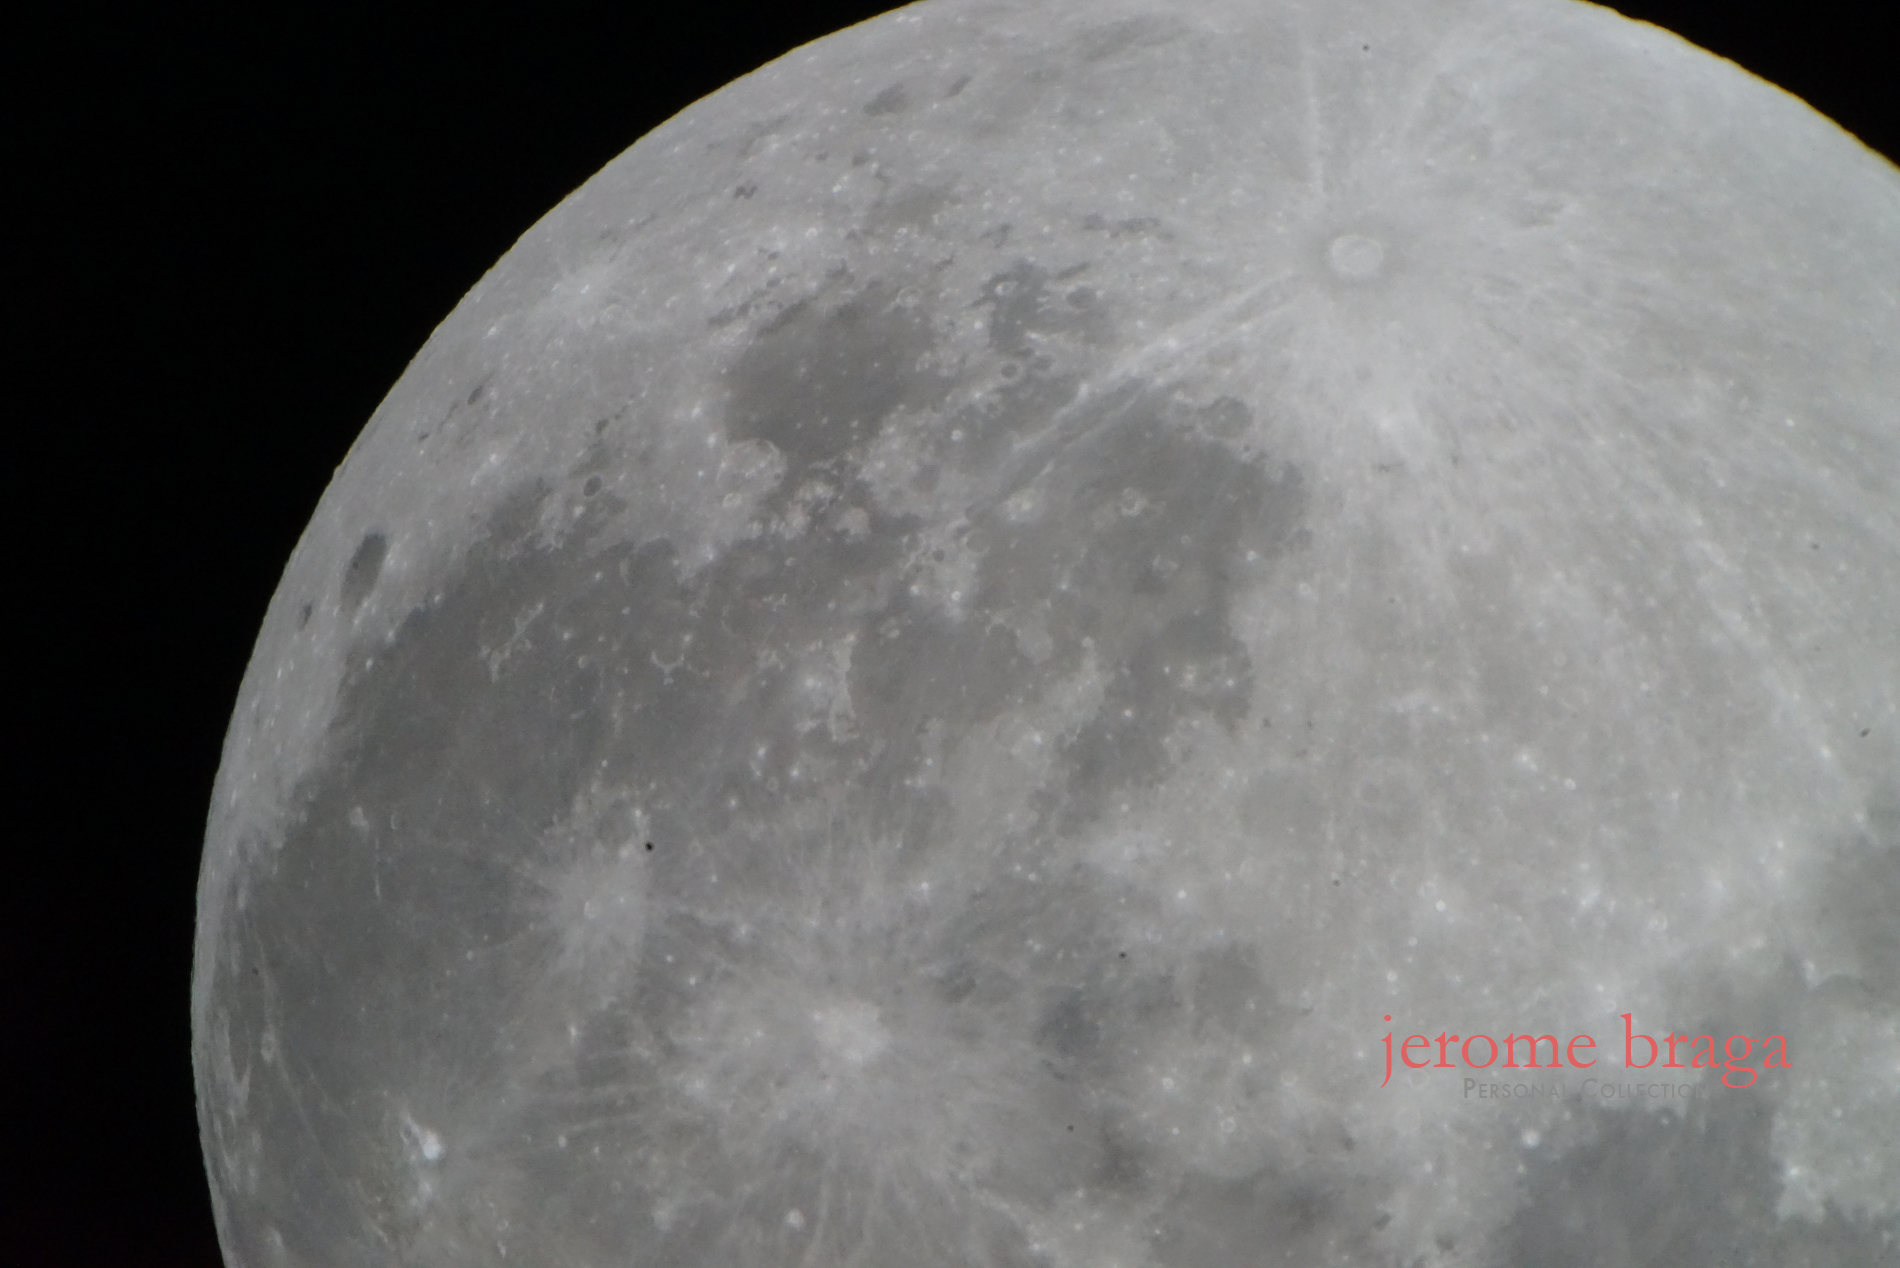 Supermoon_Jerome_Braga_0006